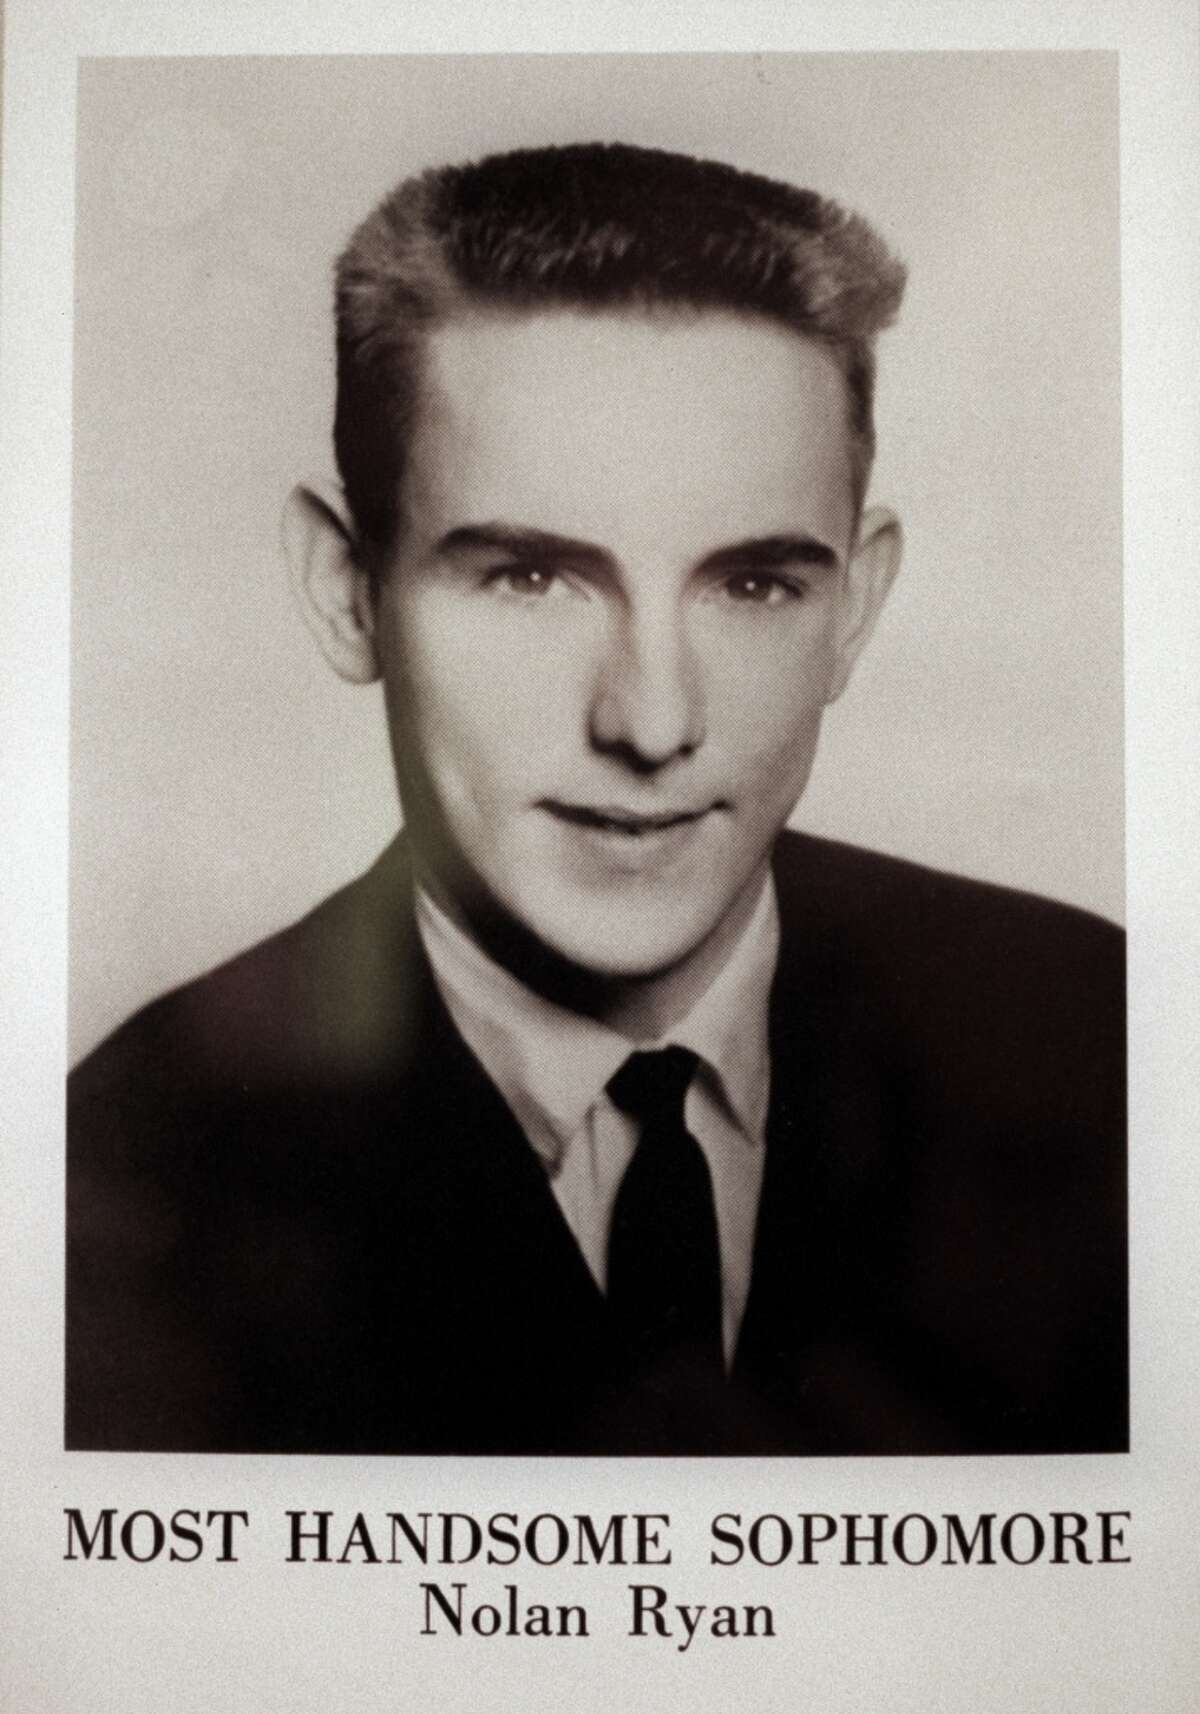 Nolan the Army man As a sophomore at Alvin High School, Ryan (shown here in yearbook photo) was voted Most Handsome. He spent a year in the U.S. Army Reserves which briefly took him away from his duties with the New York Mets after he was drafted by the team in 1965.